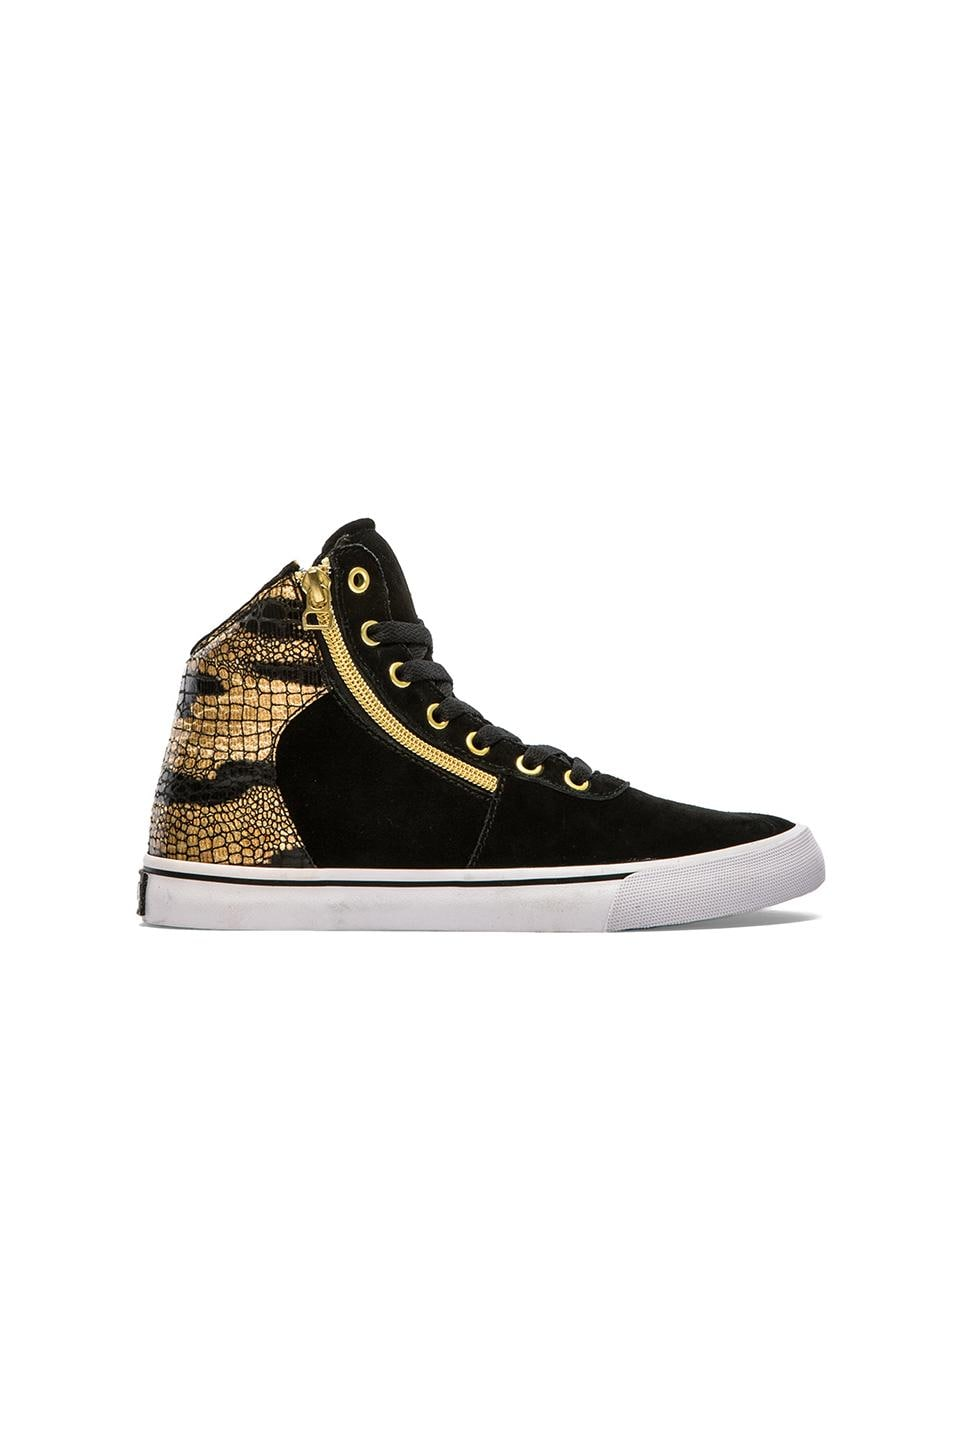 Supra Cuttler High Top Sneaker in Black & Gold